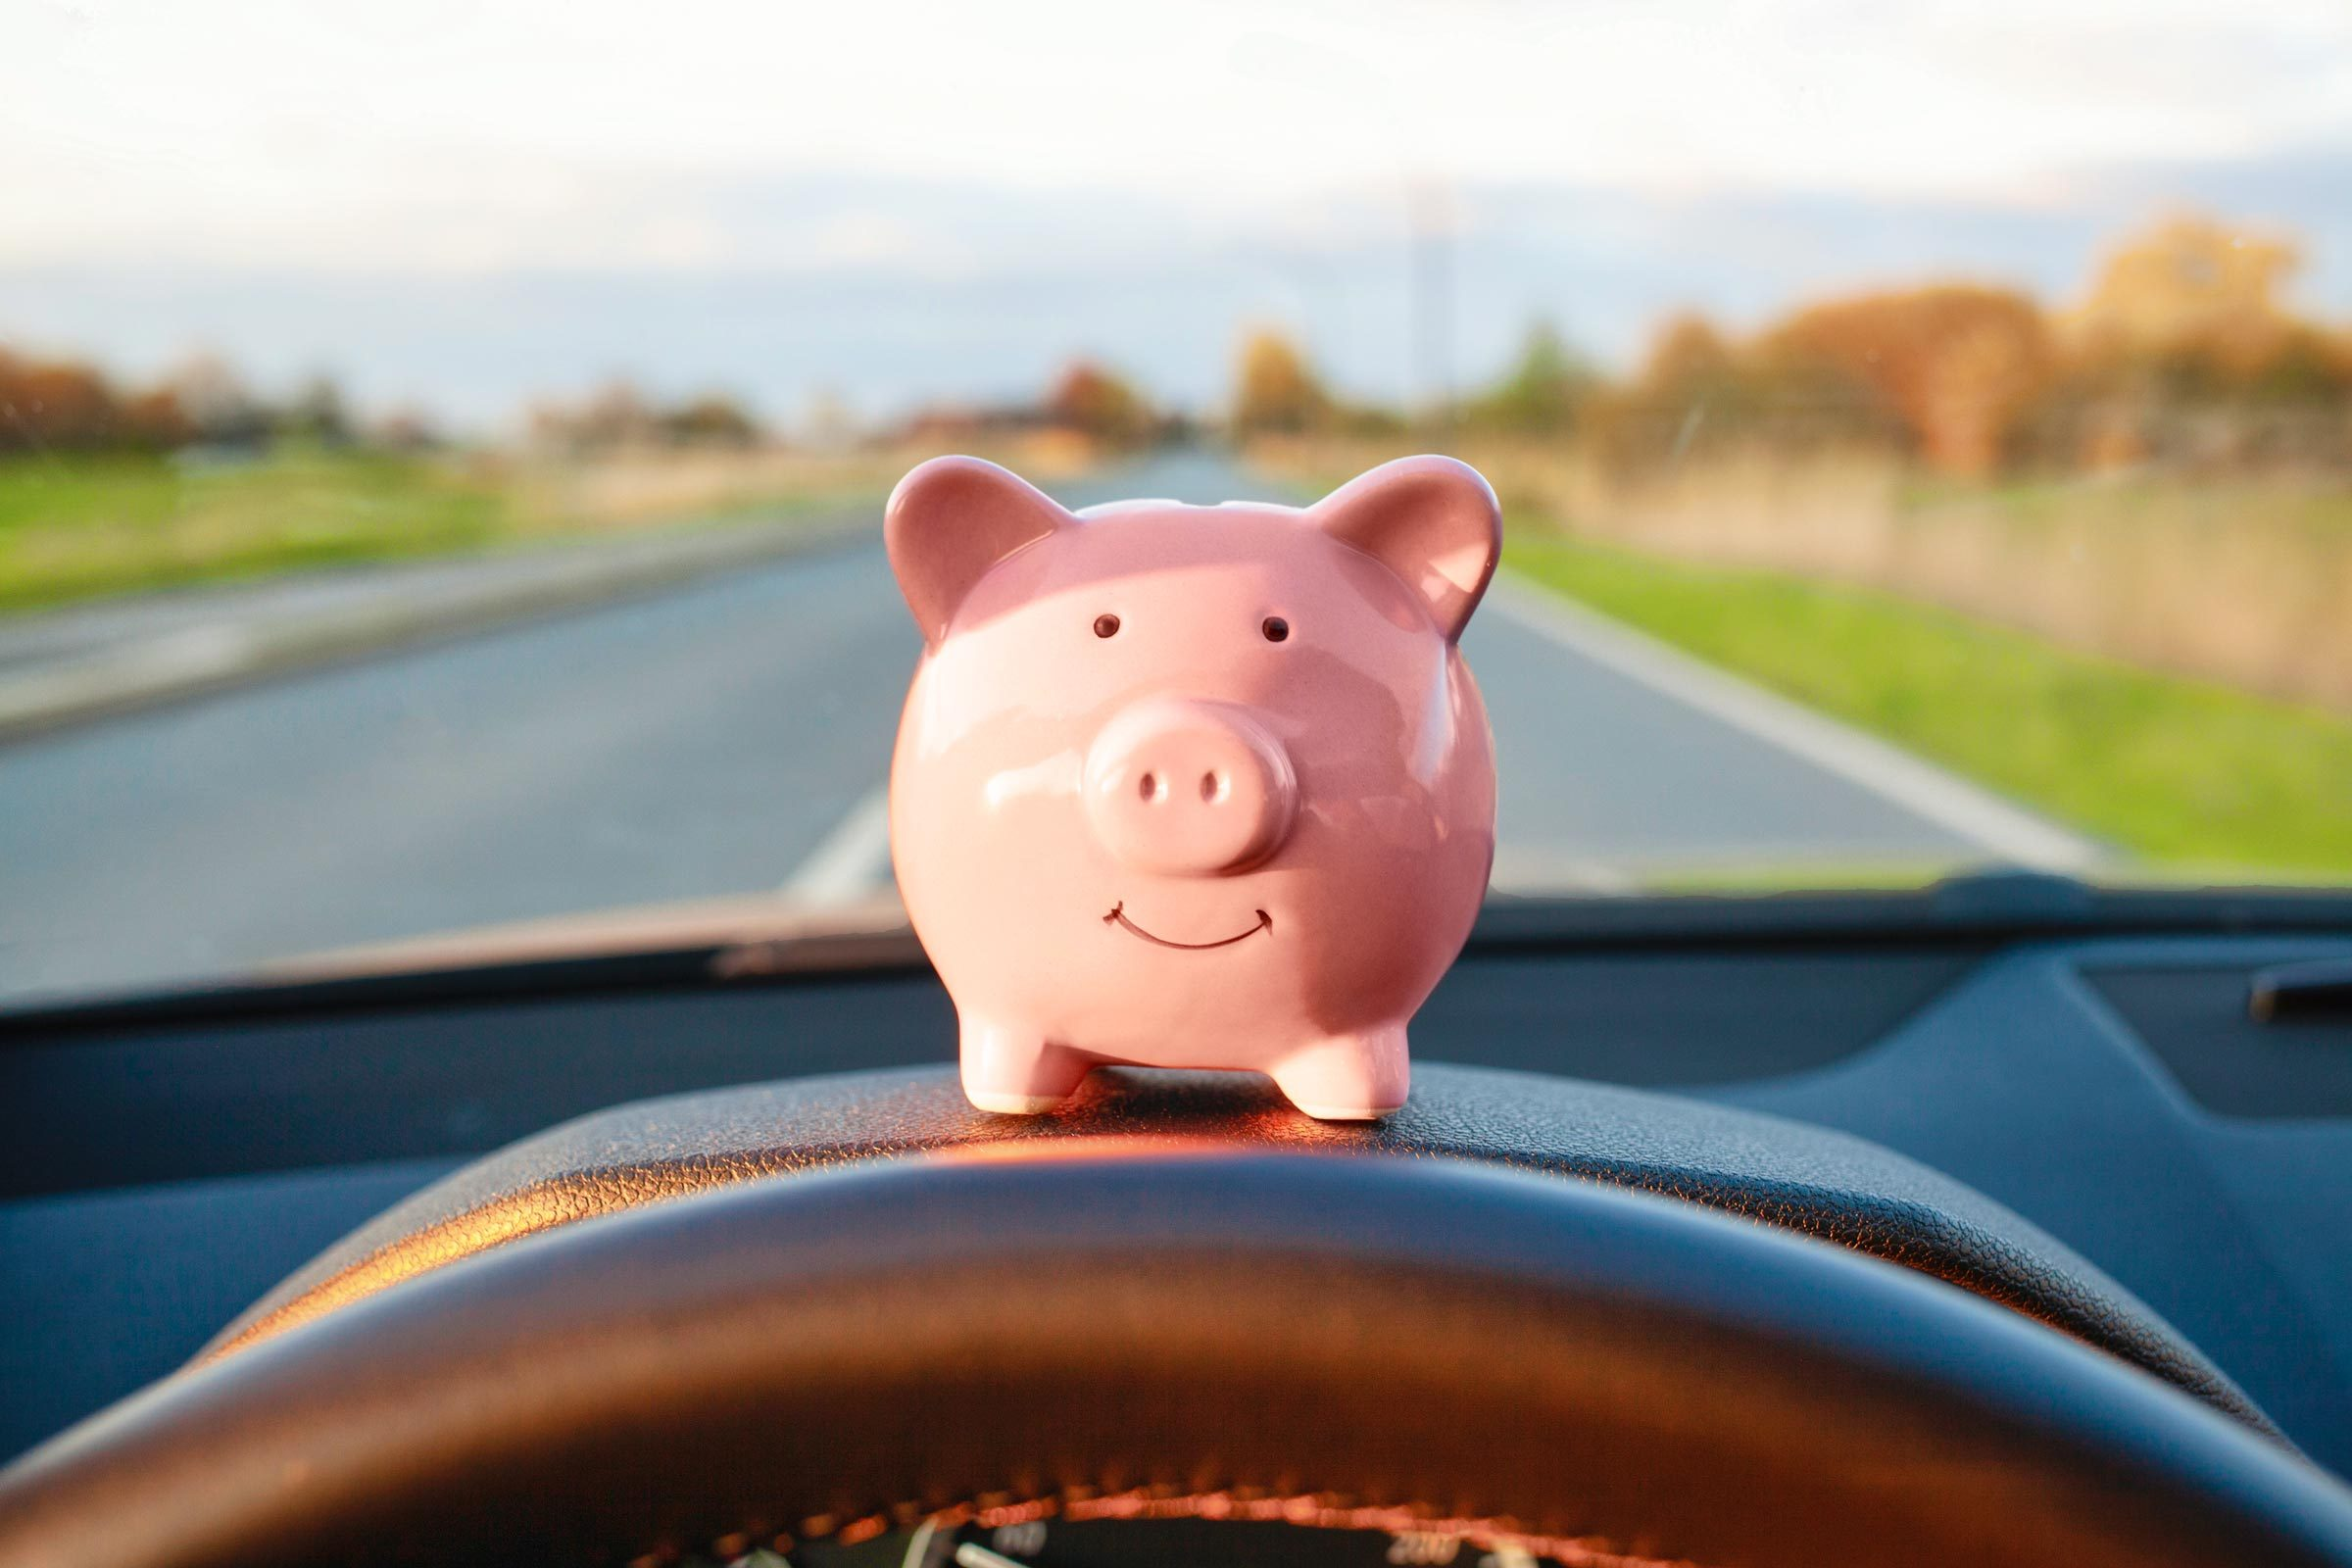 piggy bank sitting on the dashboard of a car on a road trip